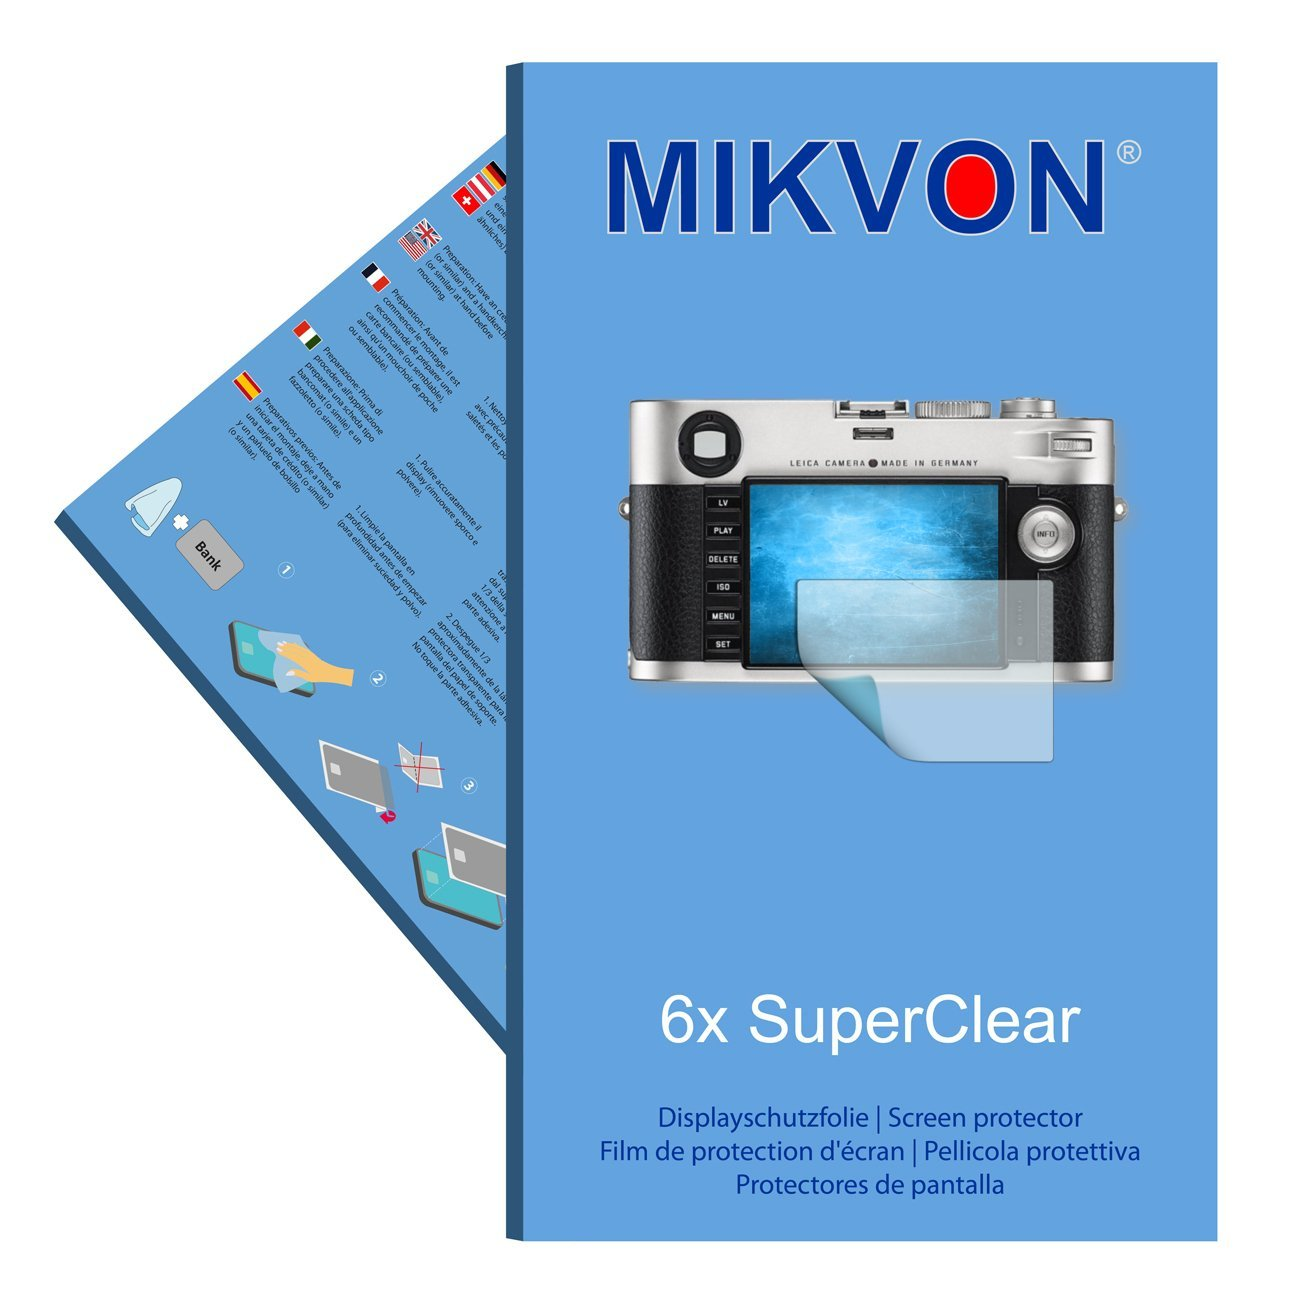 6x Mikvon films screen protector SuperClear for Leica M - transparent - Made in Germany